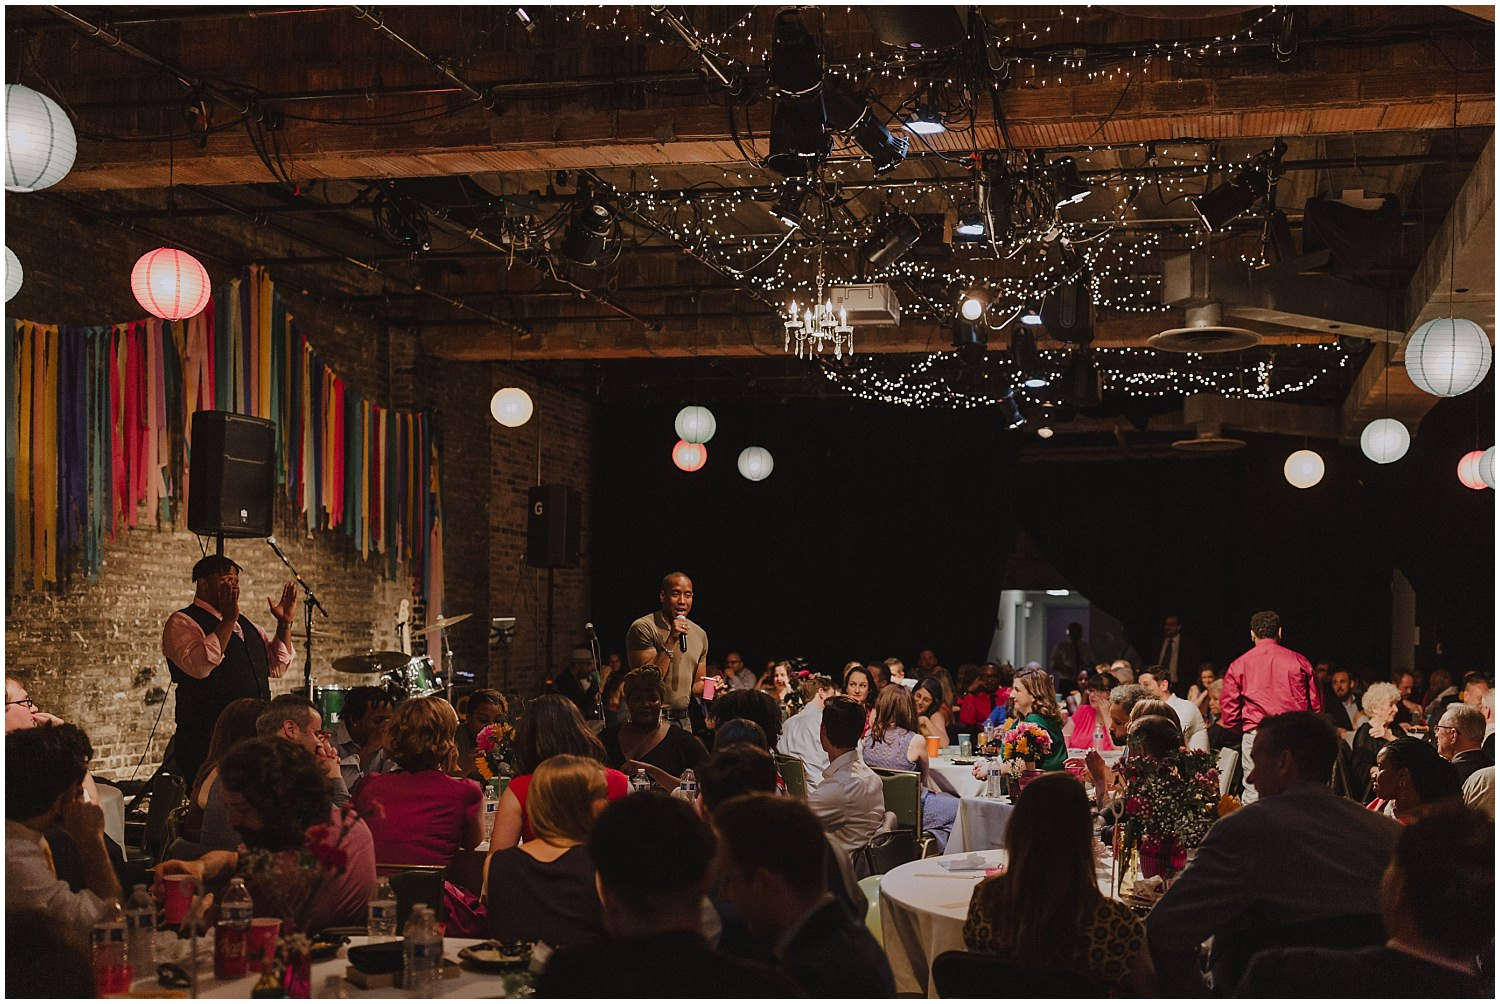 Intimate Filament Theater Chicago Wedding Reception Variety Show